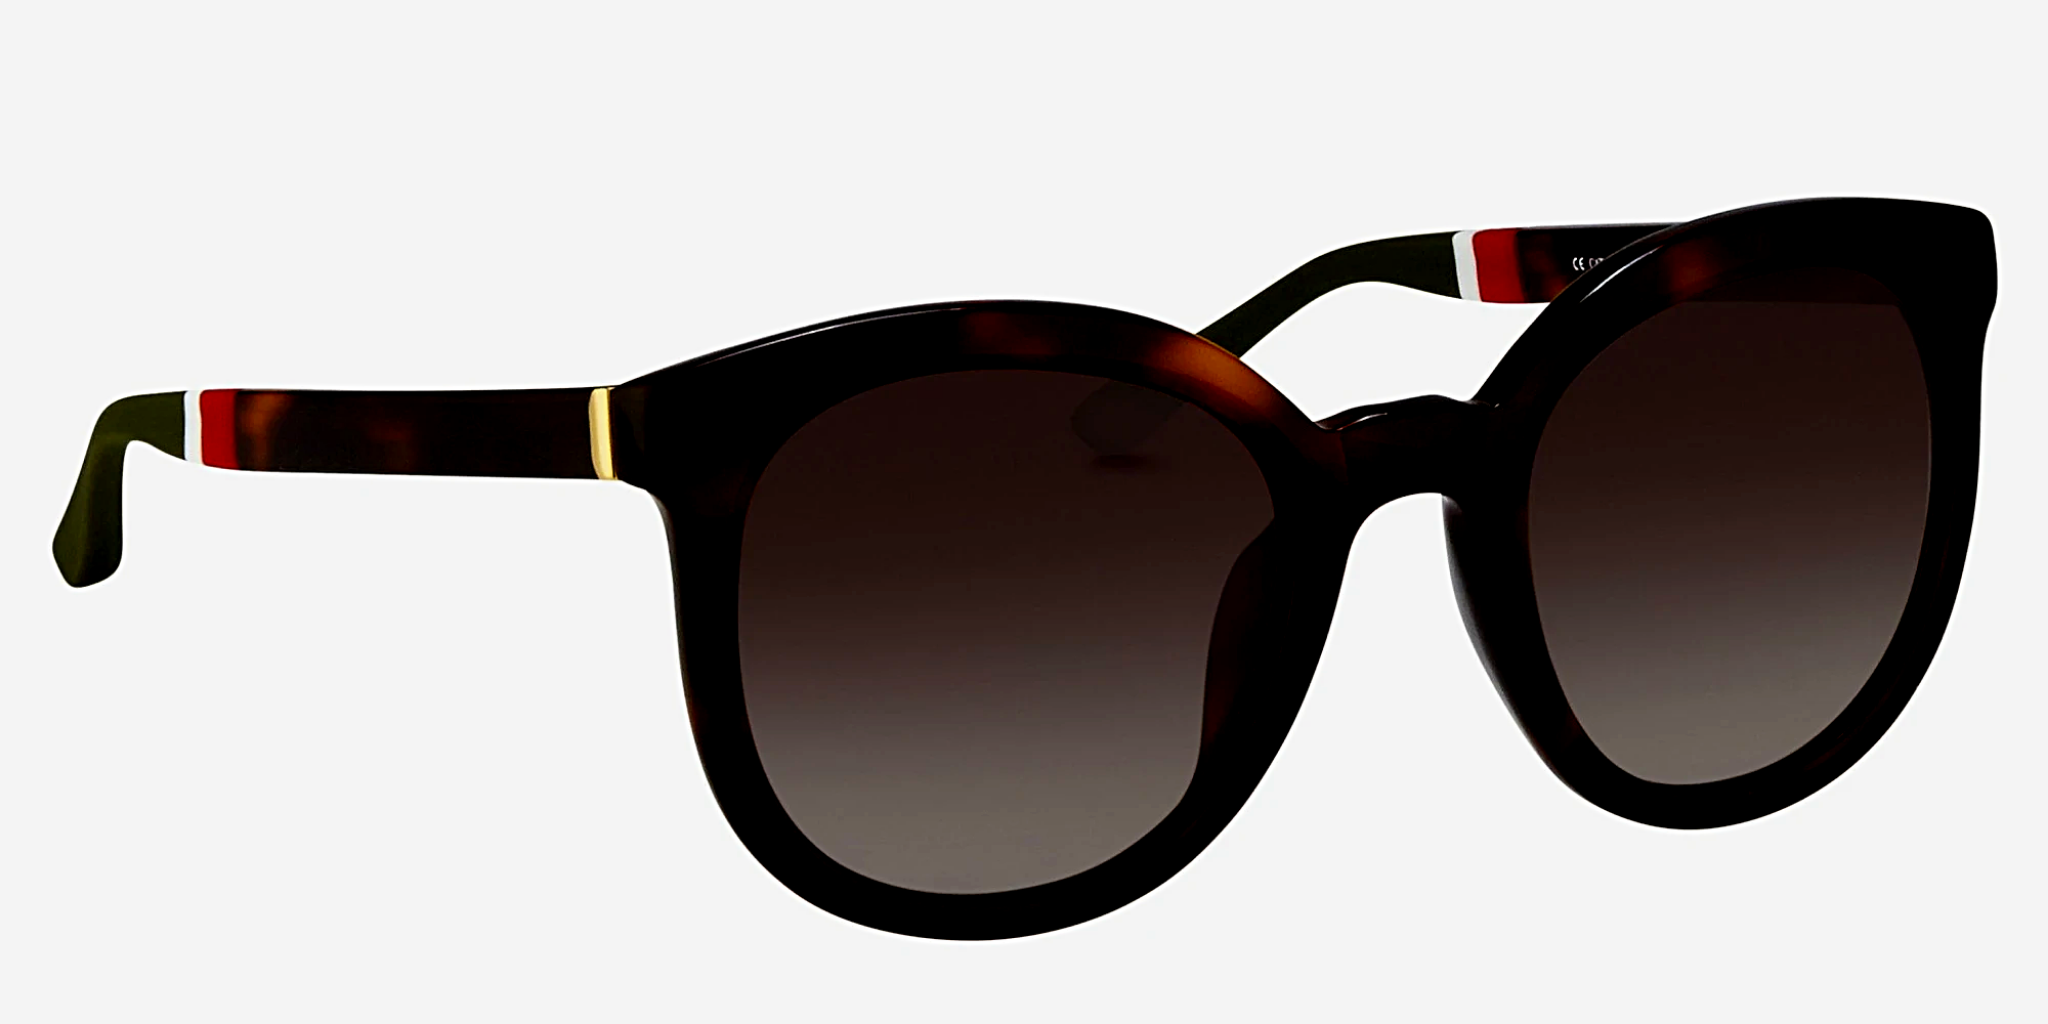 Orlebar Brown Sunglasses Oversized Tortoise Shell and Brown